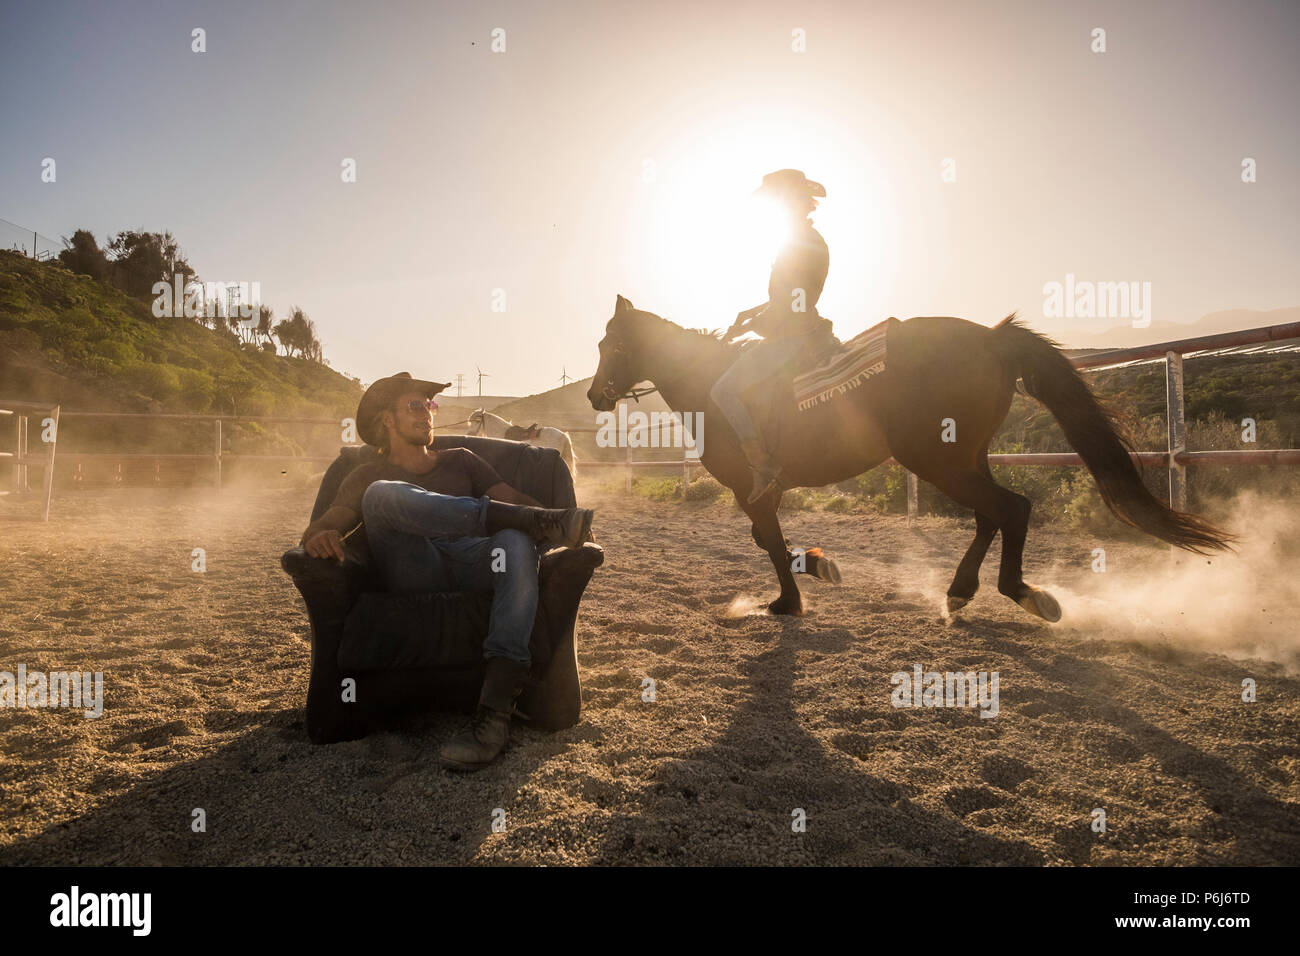 riders with horses in the golden sunset light. a man sitting on an old seat and a woman ride around him making dust. scenery image with windmills in b - Stock Image